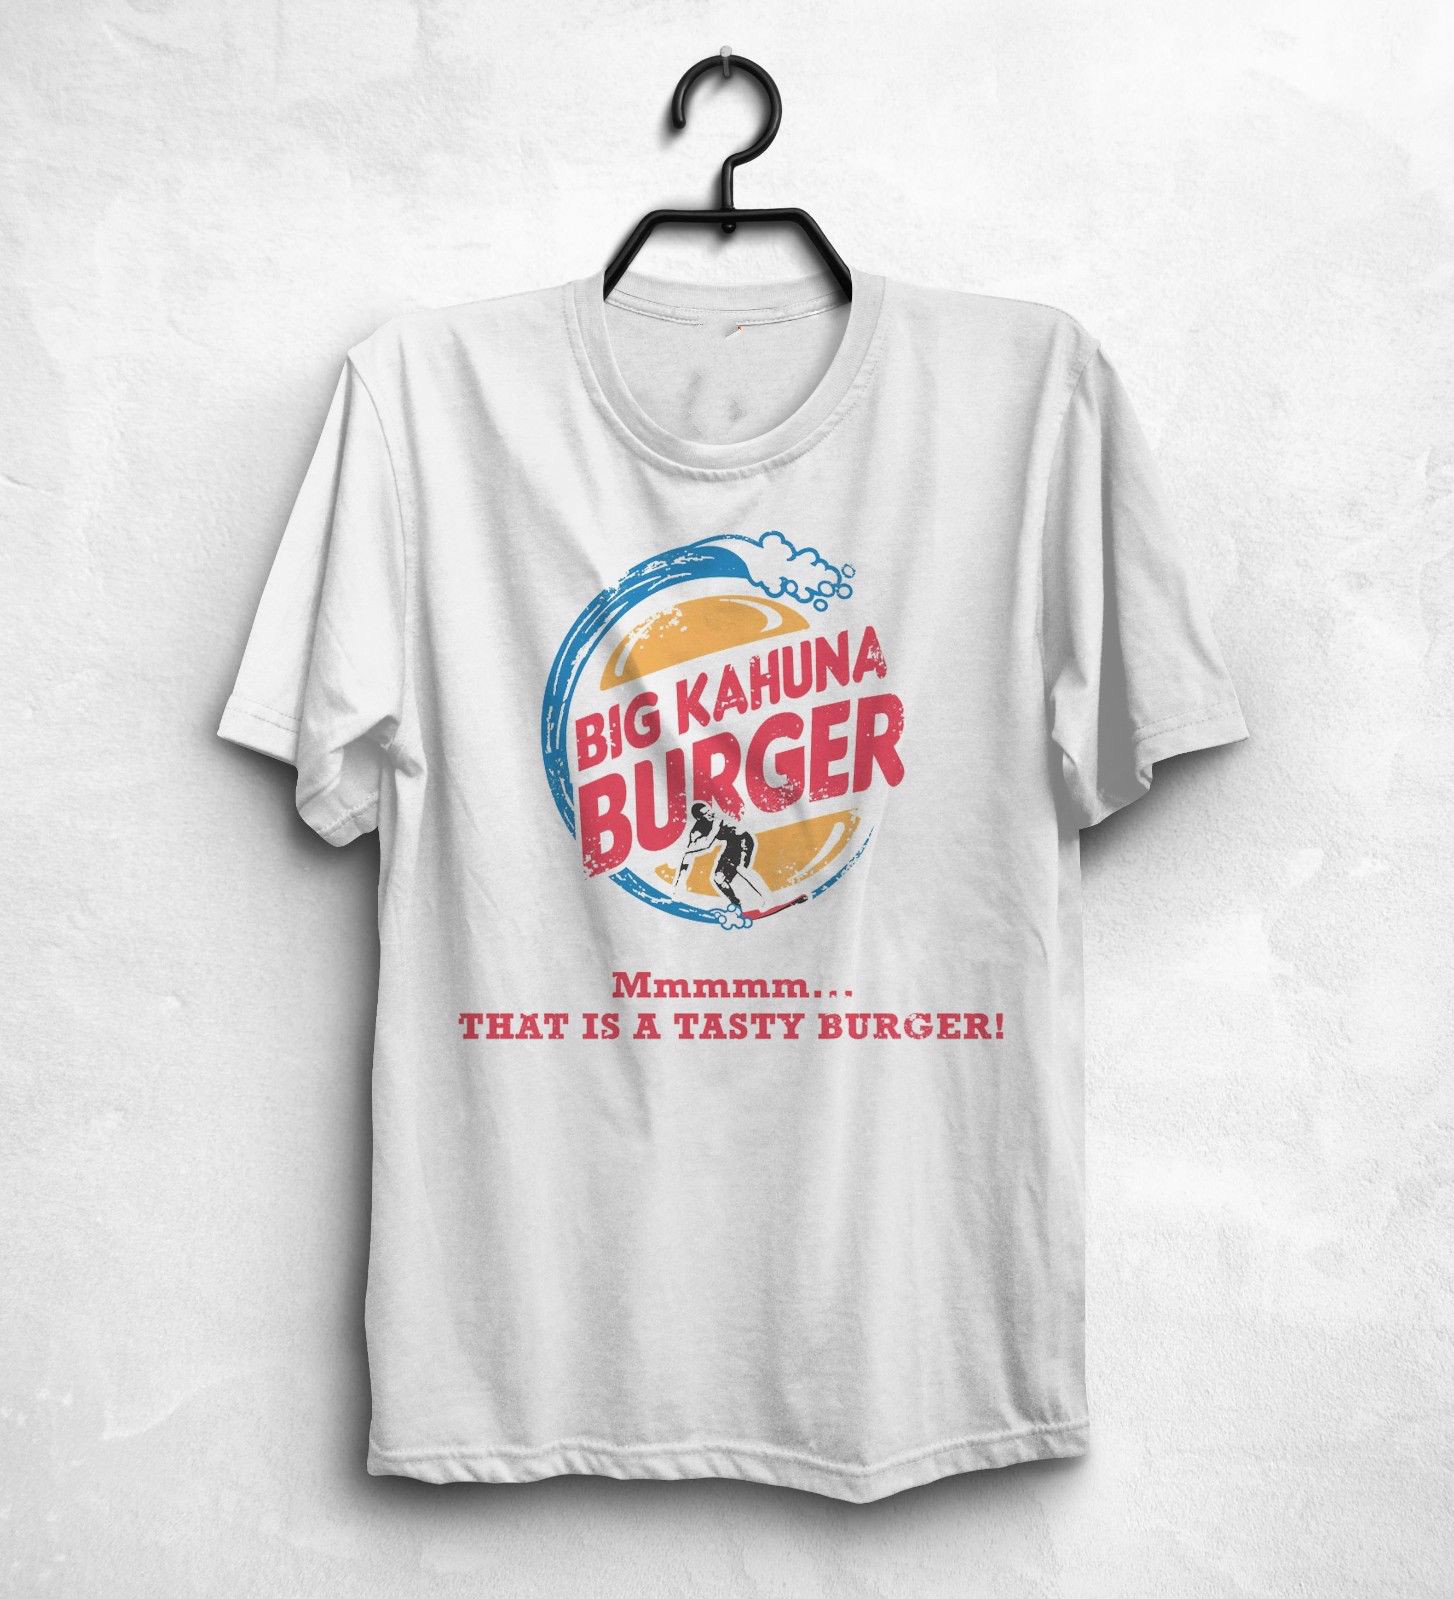 big-kahuna-burger-t-shirt-pulp-fiction-bad-netflix-font-b-tarantino-b-font-kfc-printed-t-shirt-2018-fashion-brand-top-tee-t-shirt-fashion